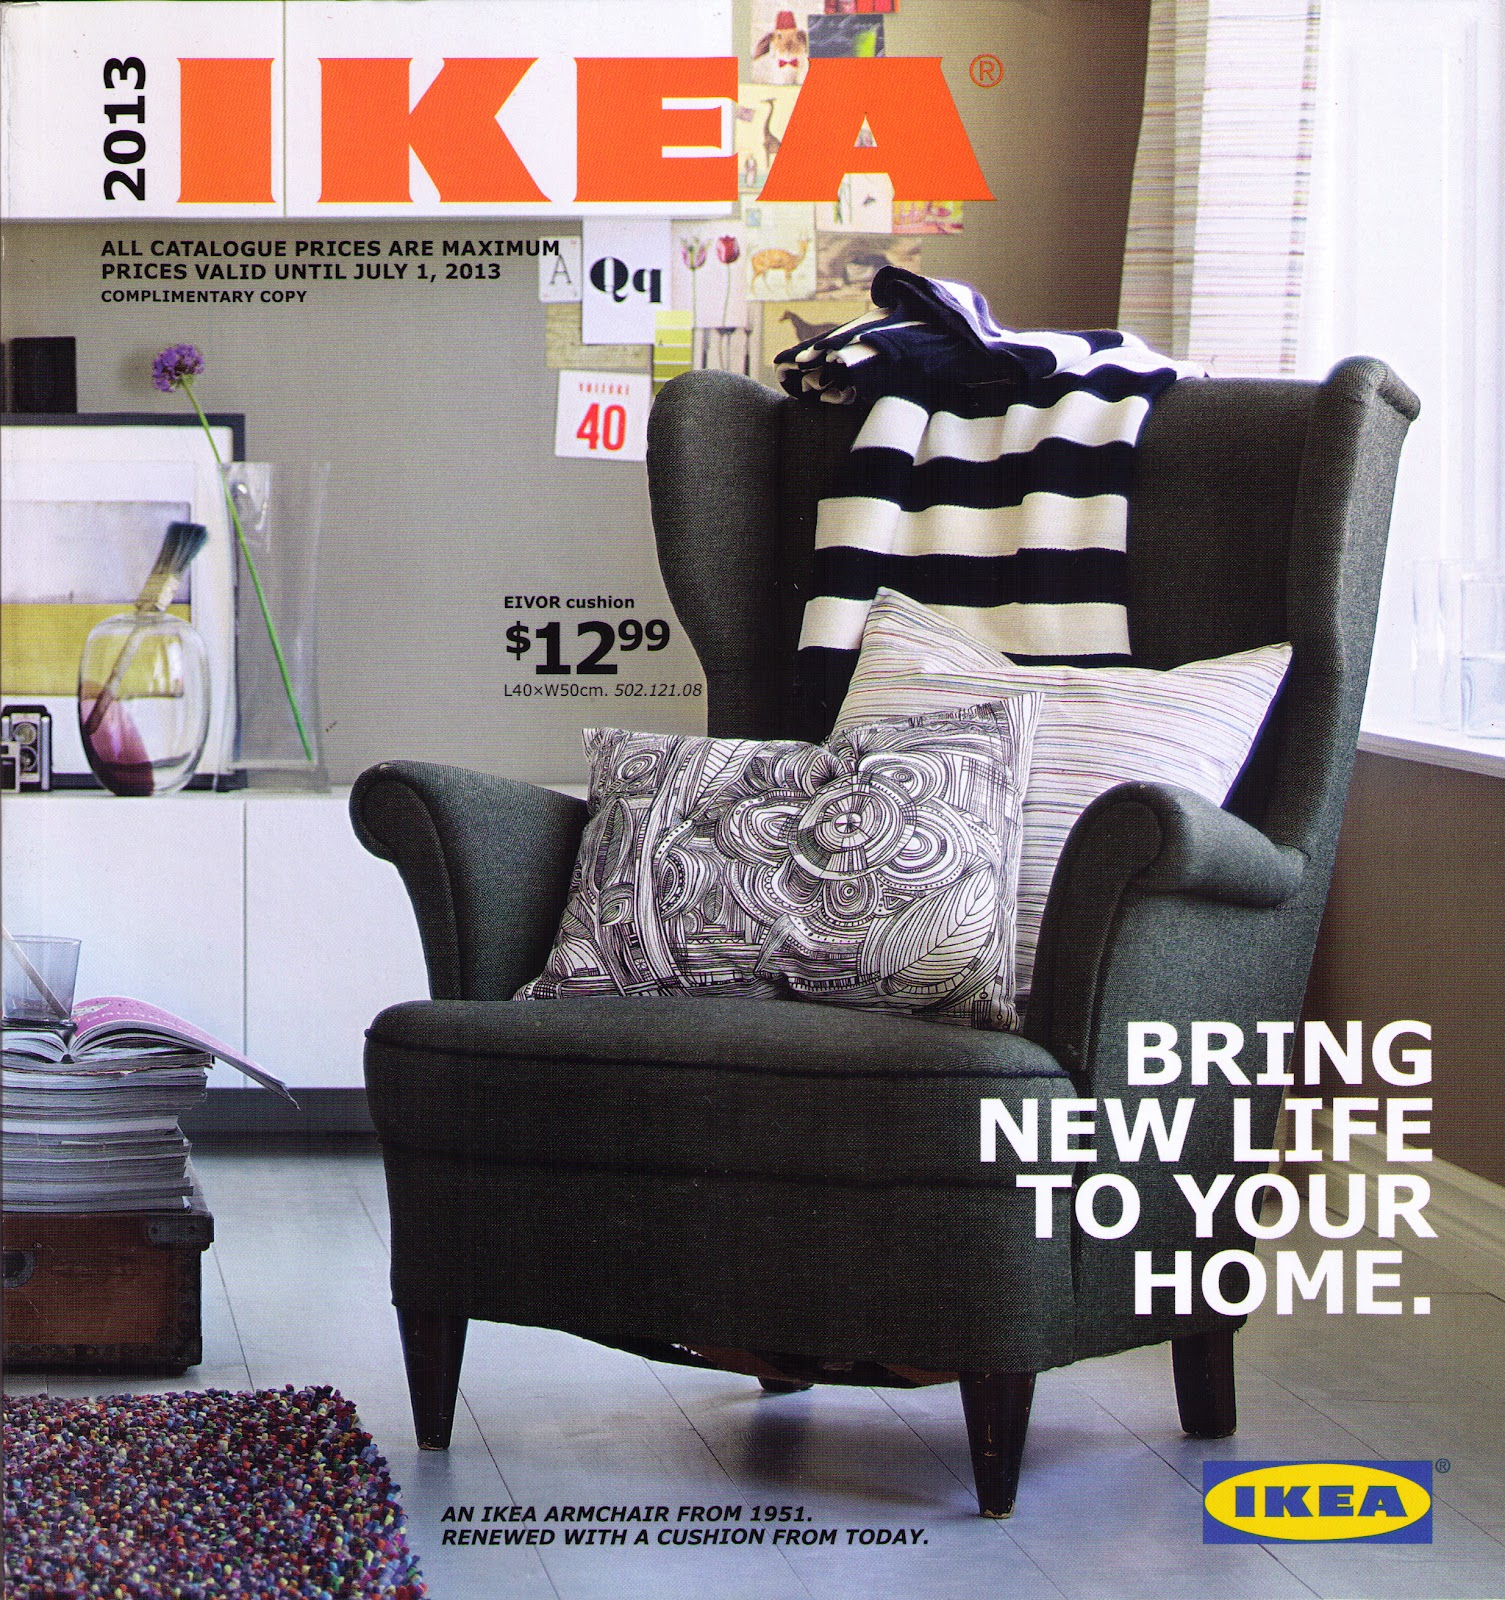 Mba4rent Are The Ikea Catalogue 39 S Best Days Behind It